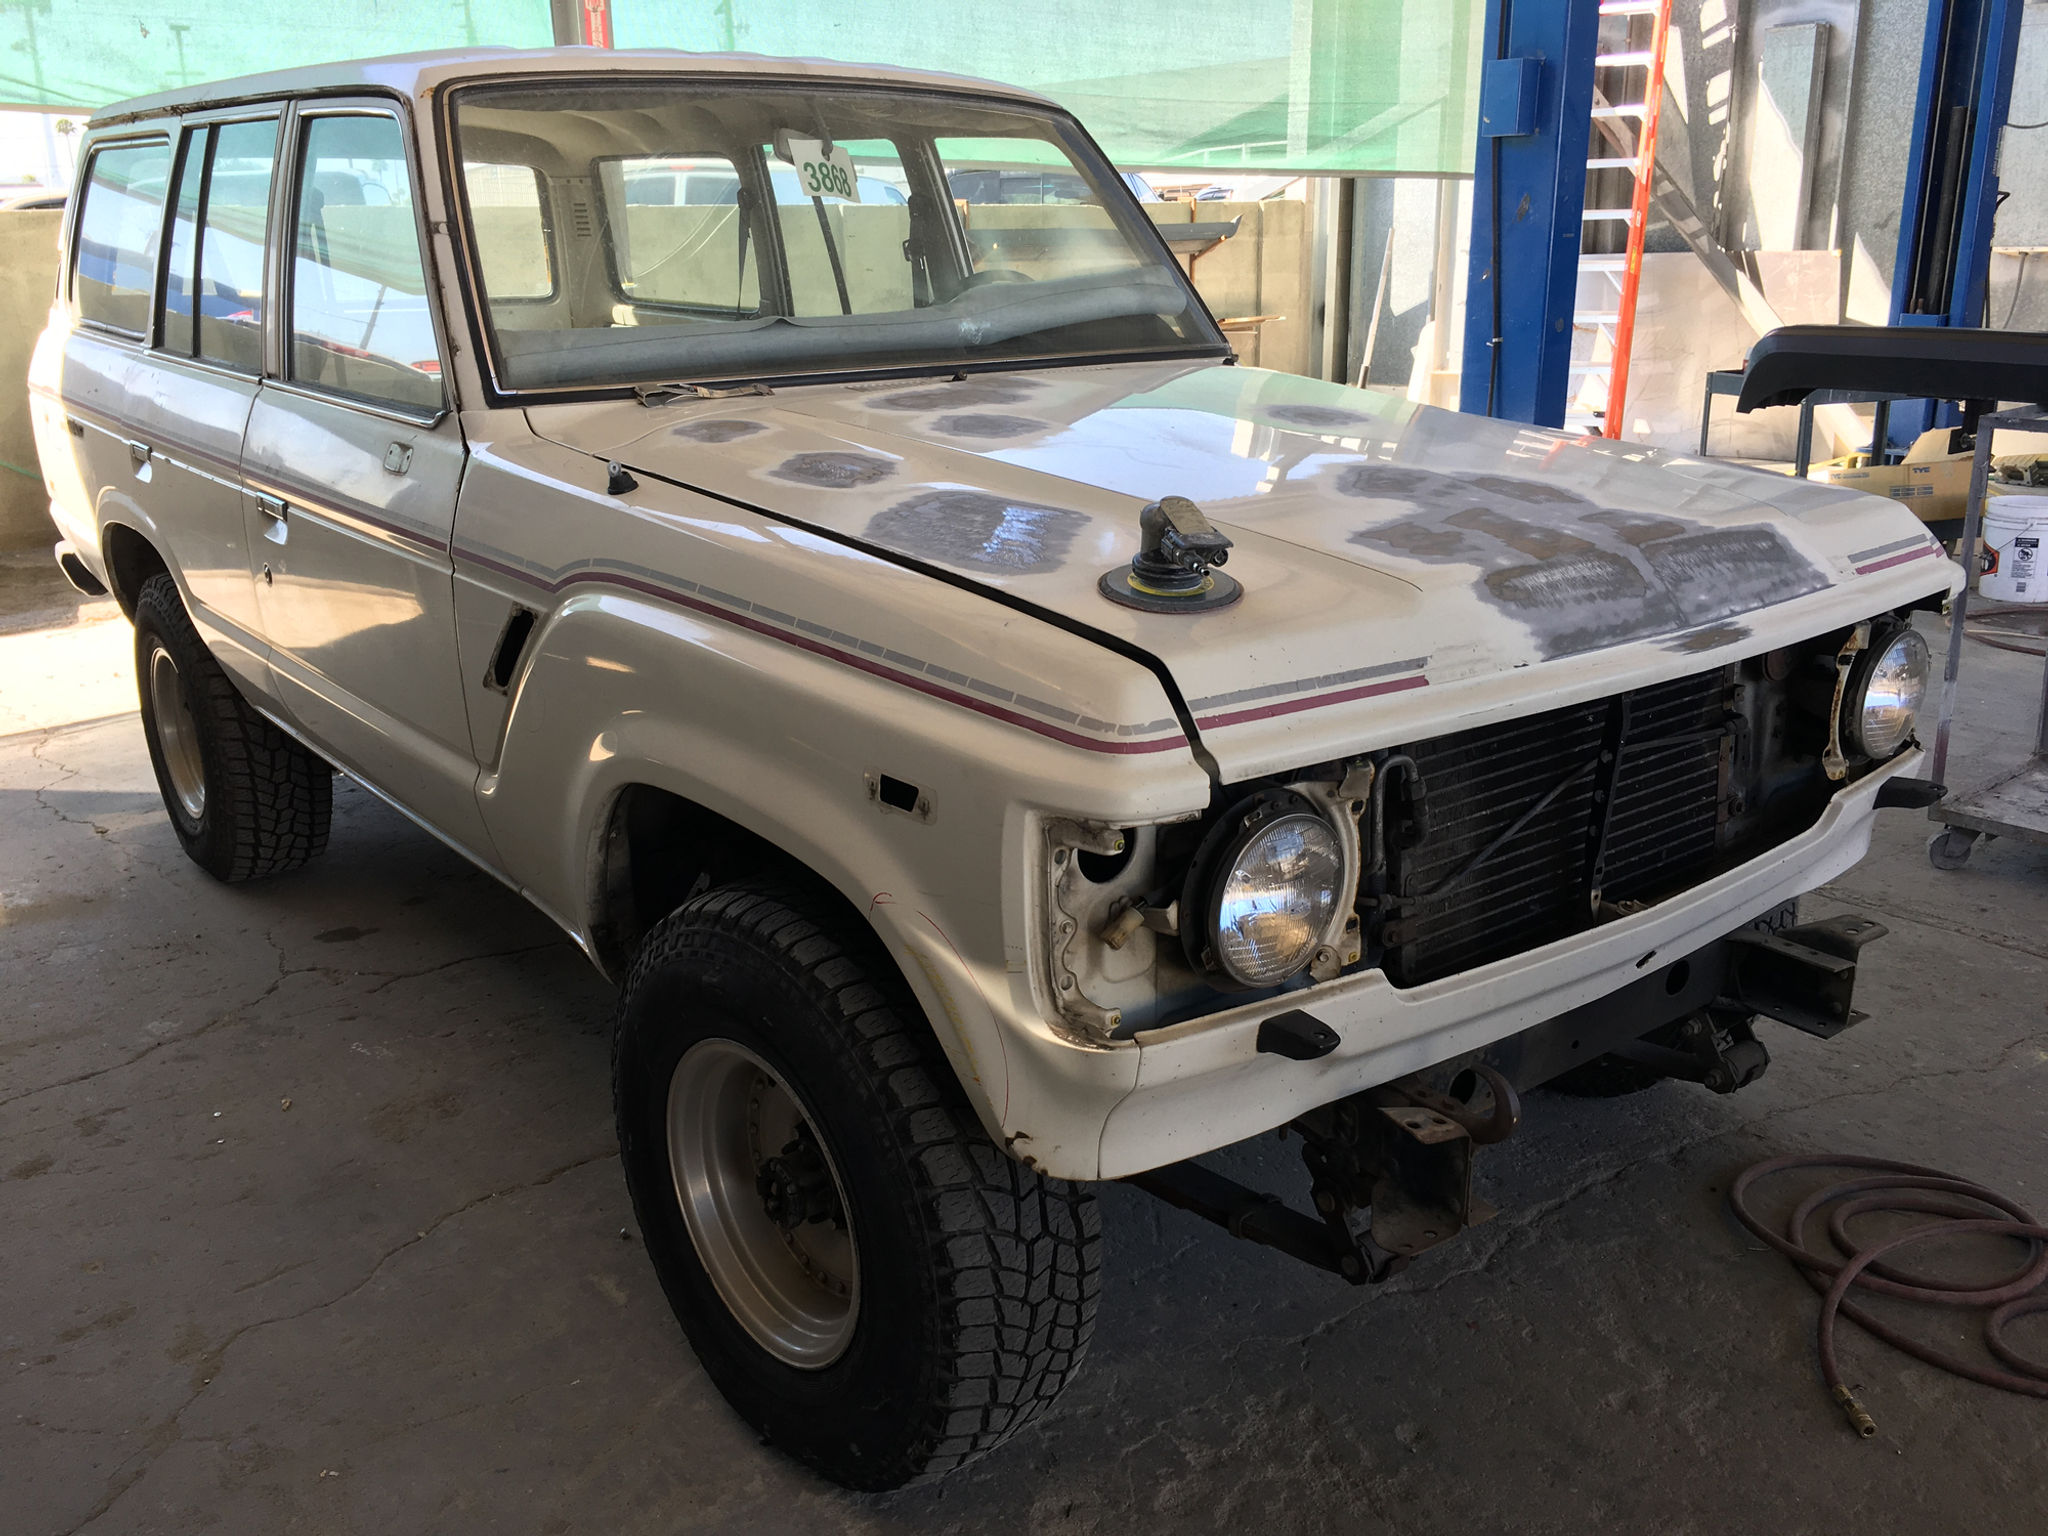 6 Common Problems With The Toyota Land Cruiser Fj60 Buyers Guide